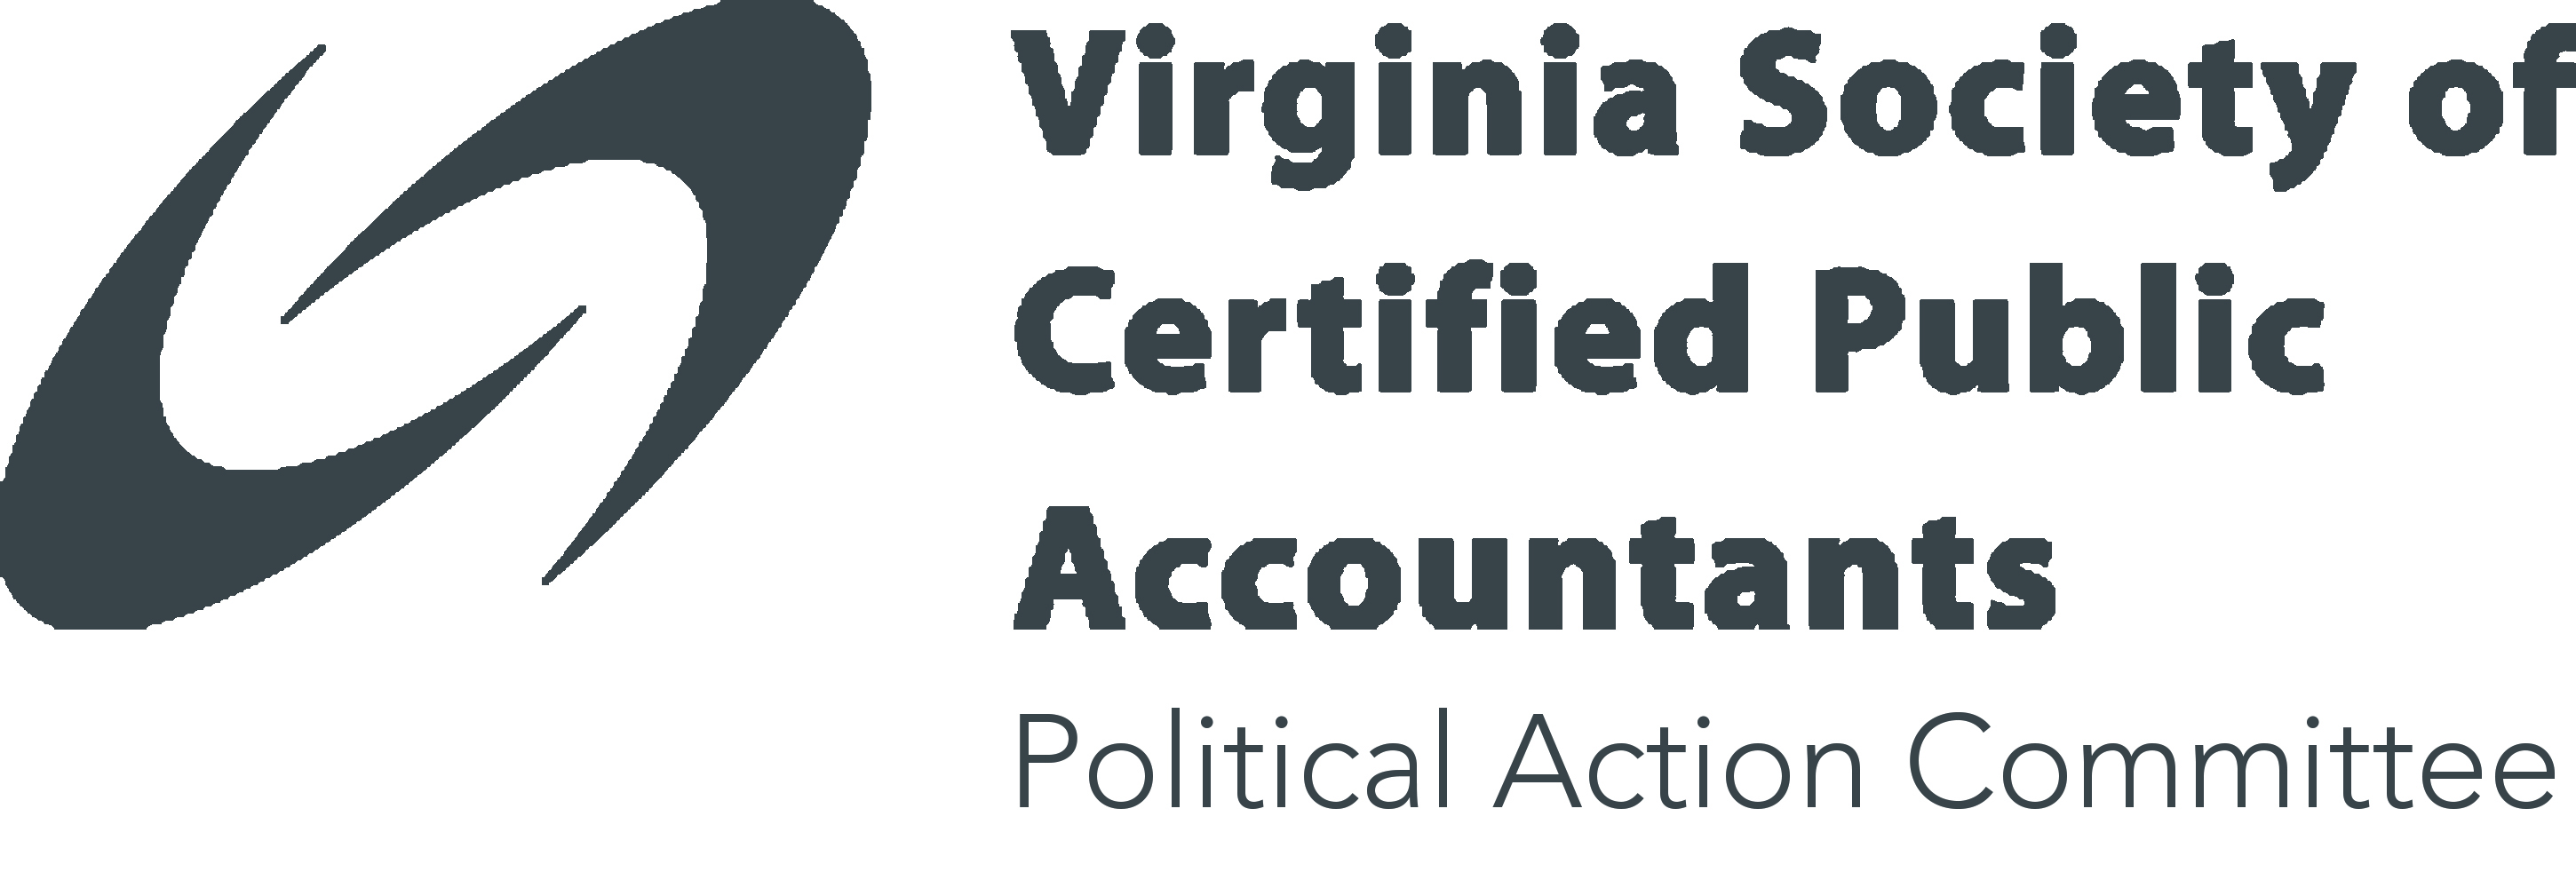 VSCPA Political Action Committee logo